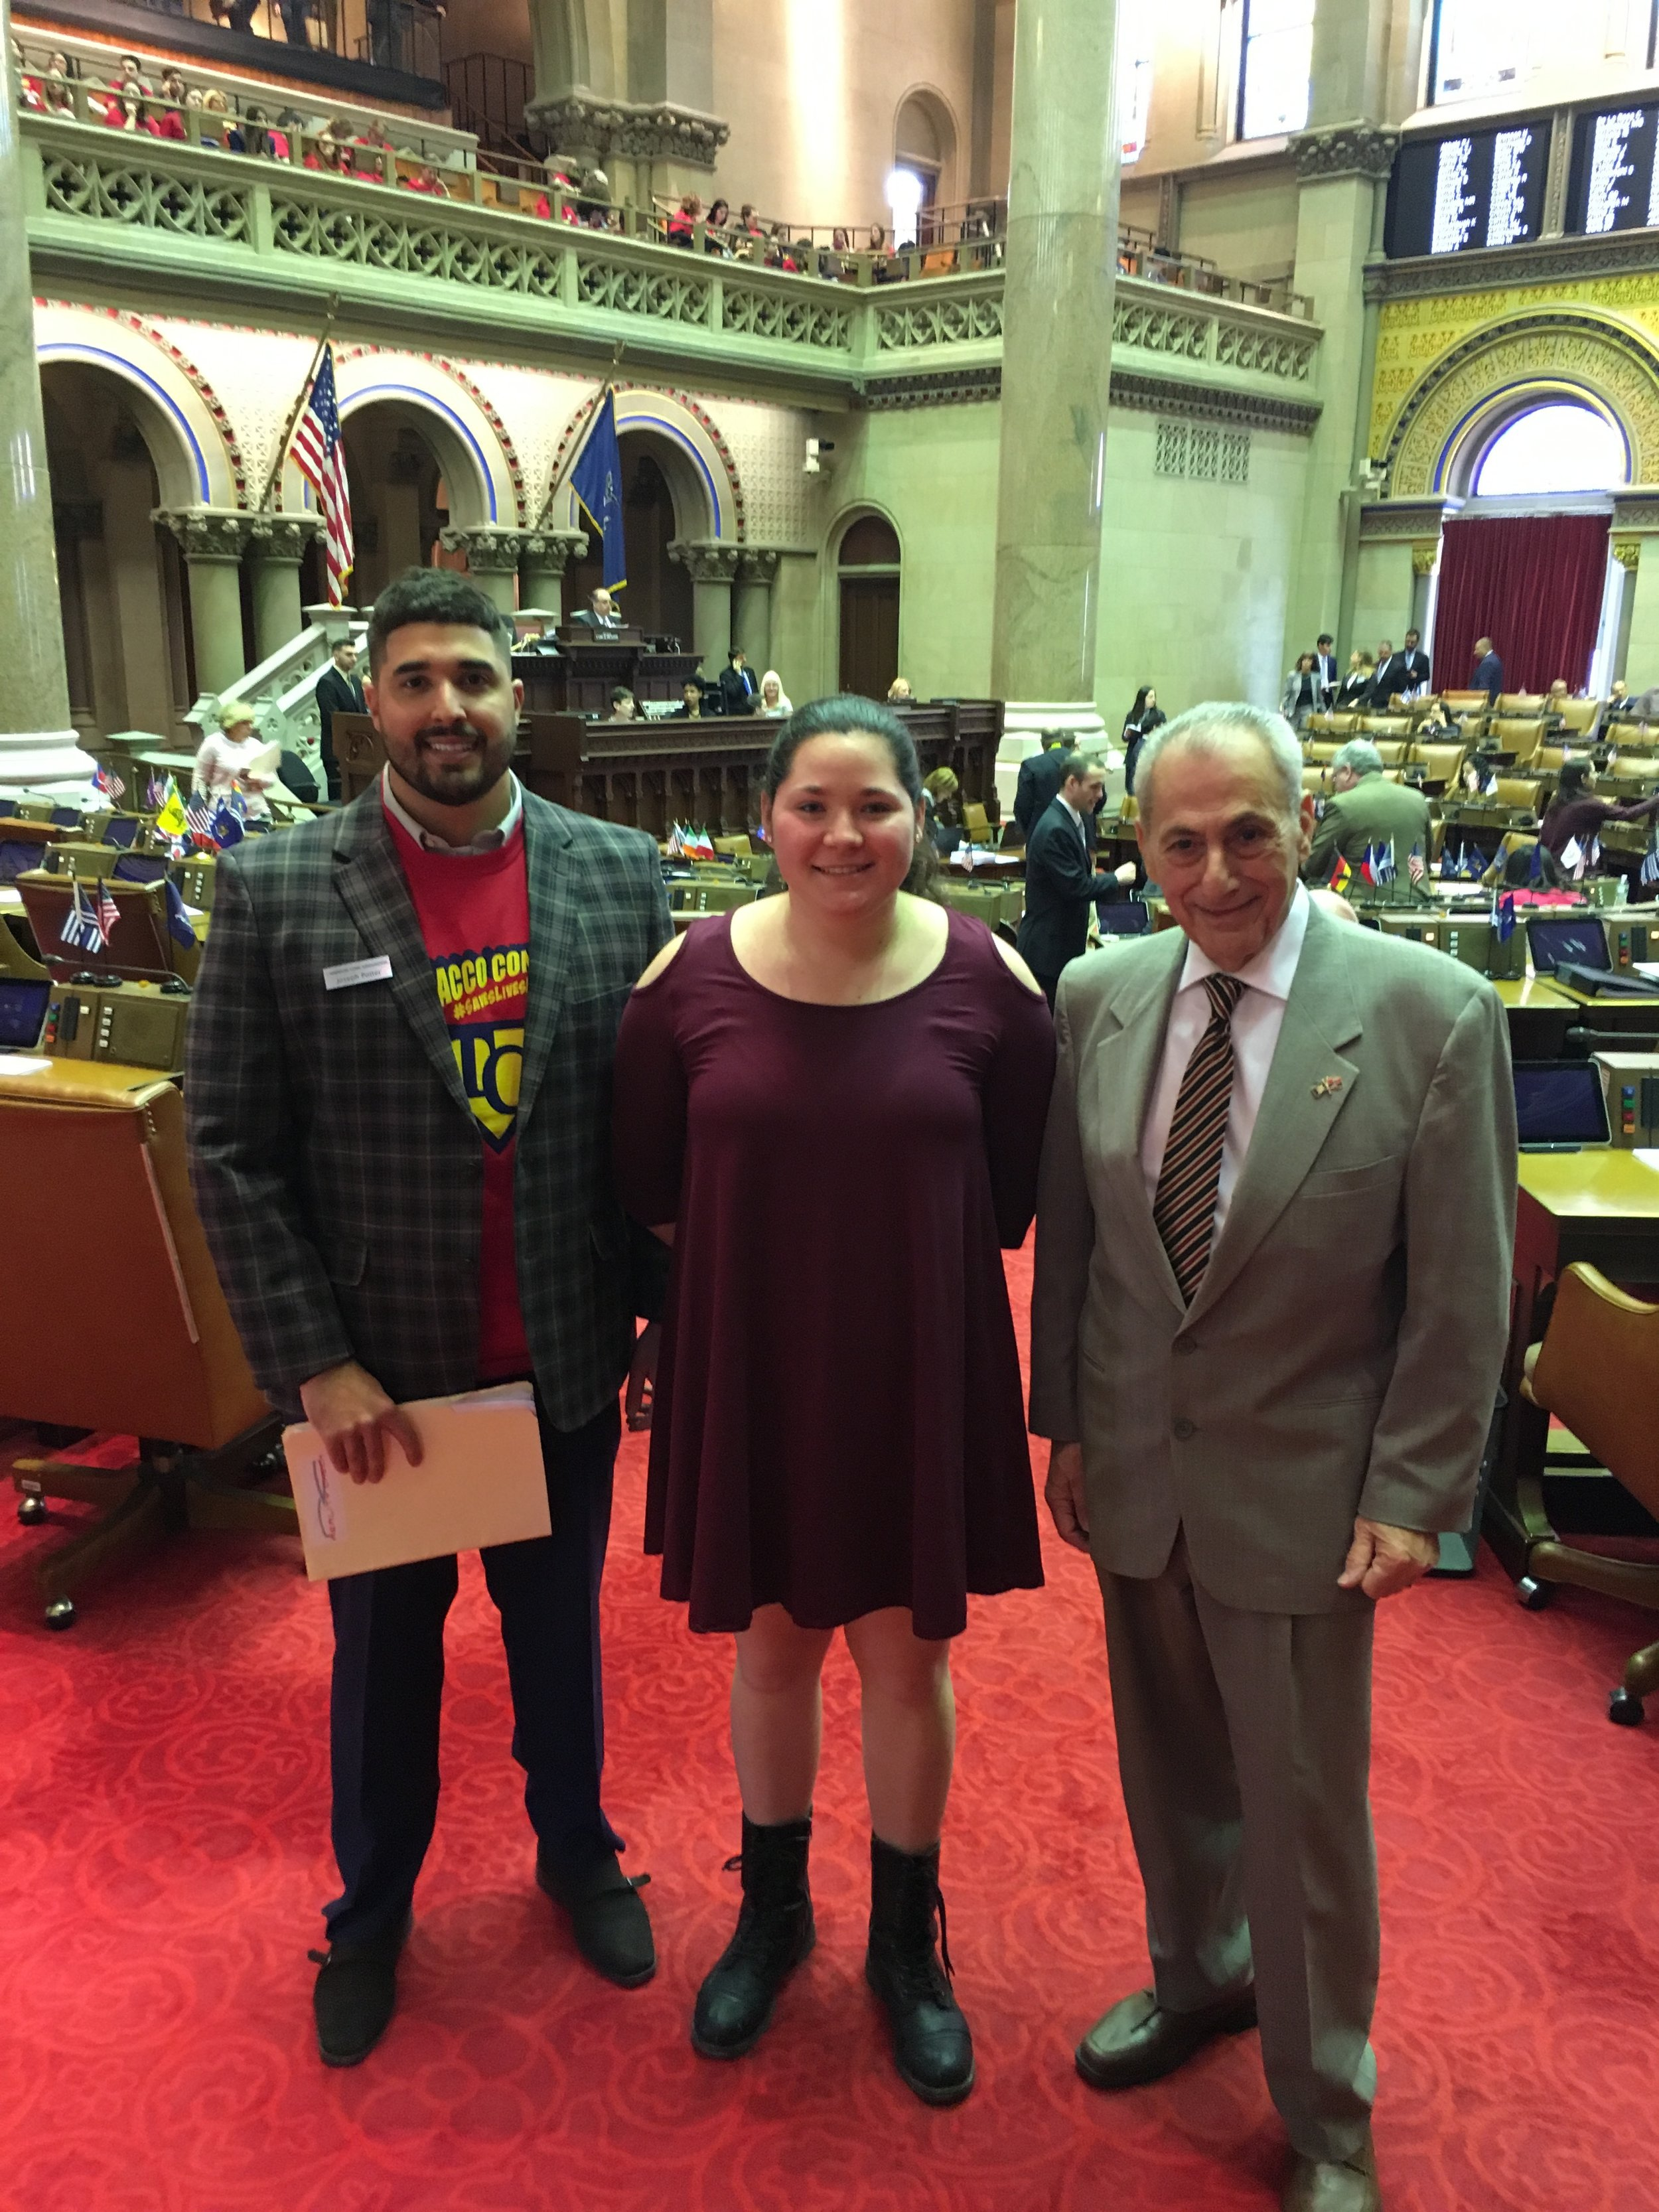 On The Floor - RC Program Coordinator Joseph Potter and RC State YAYA winner Lauren Cybul meet with Assemblyman Joe Errigo on the NY State chamber floor.